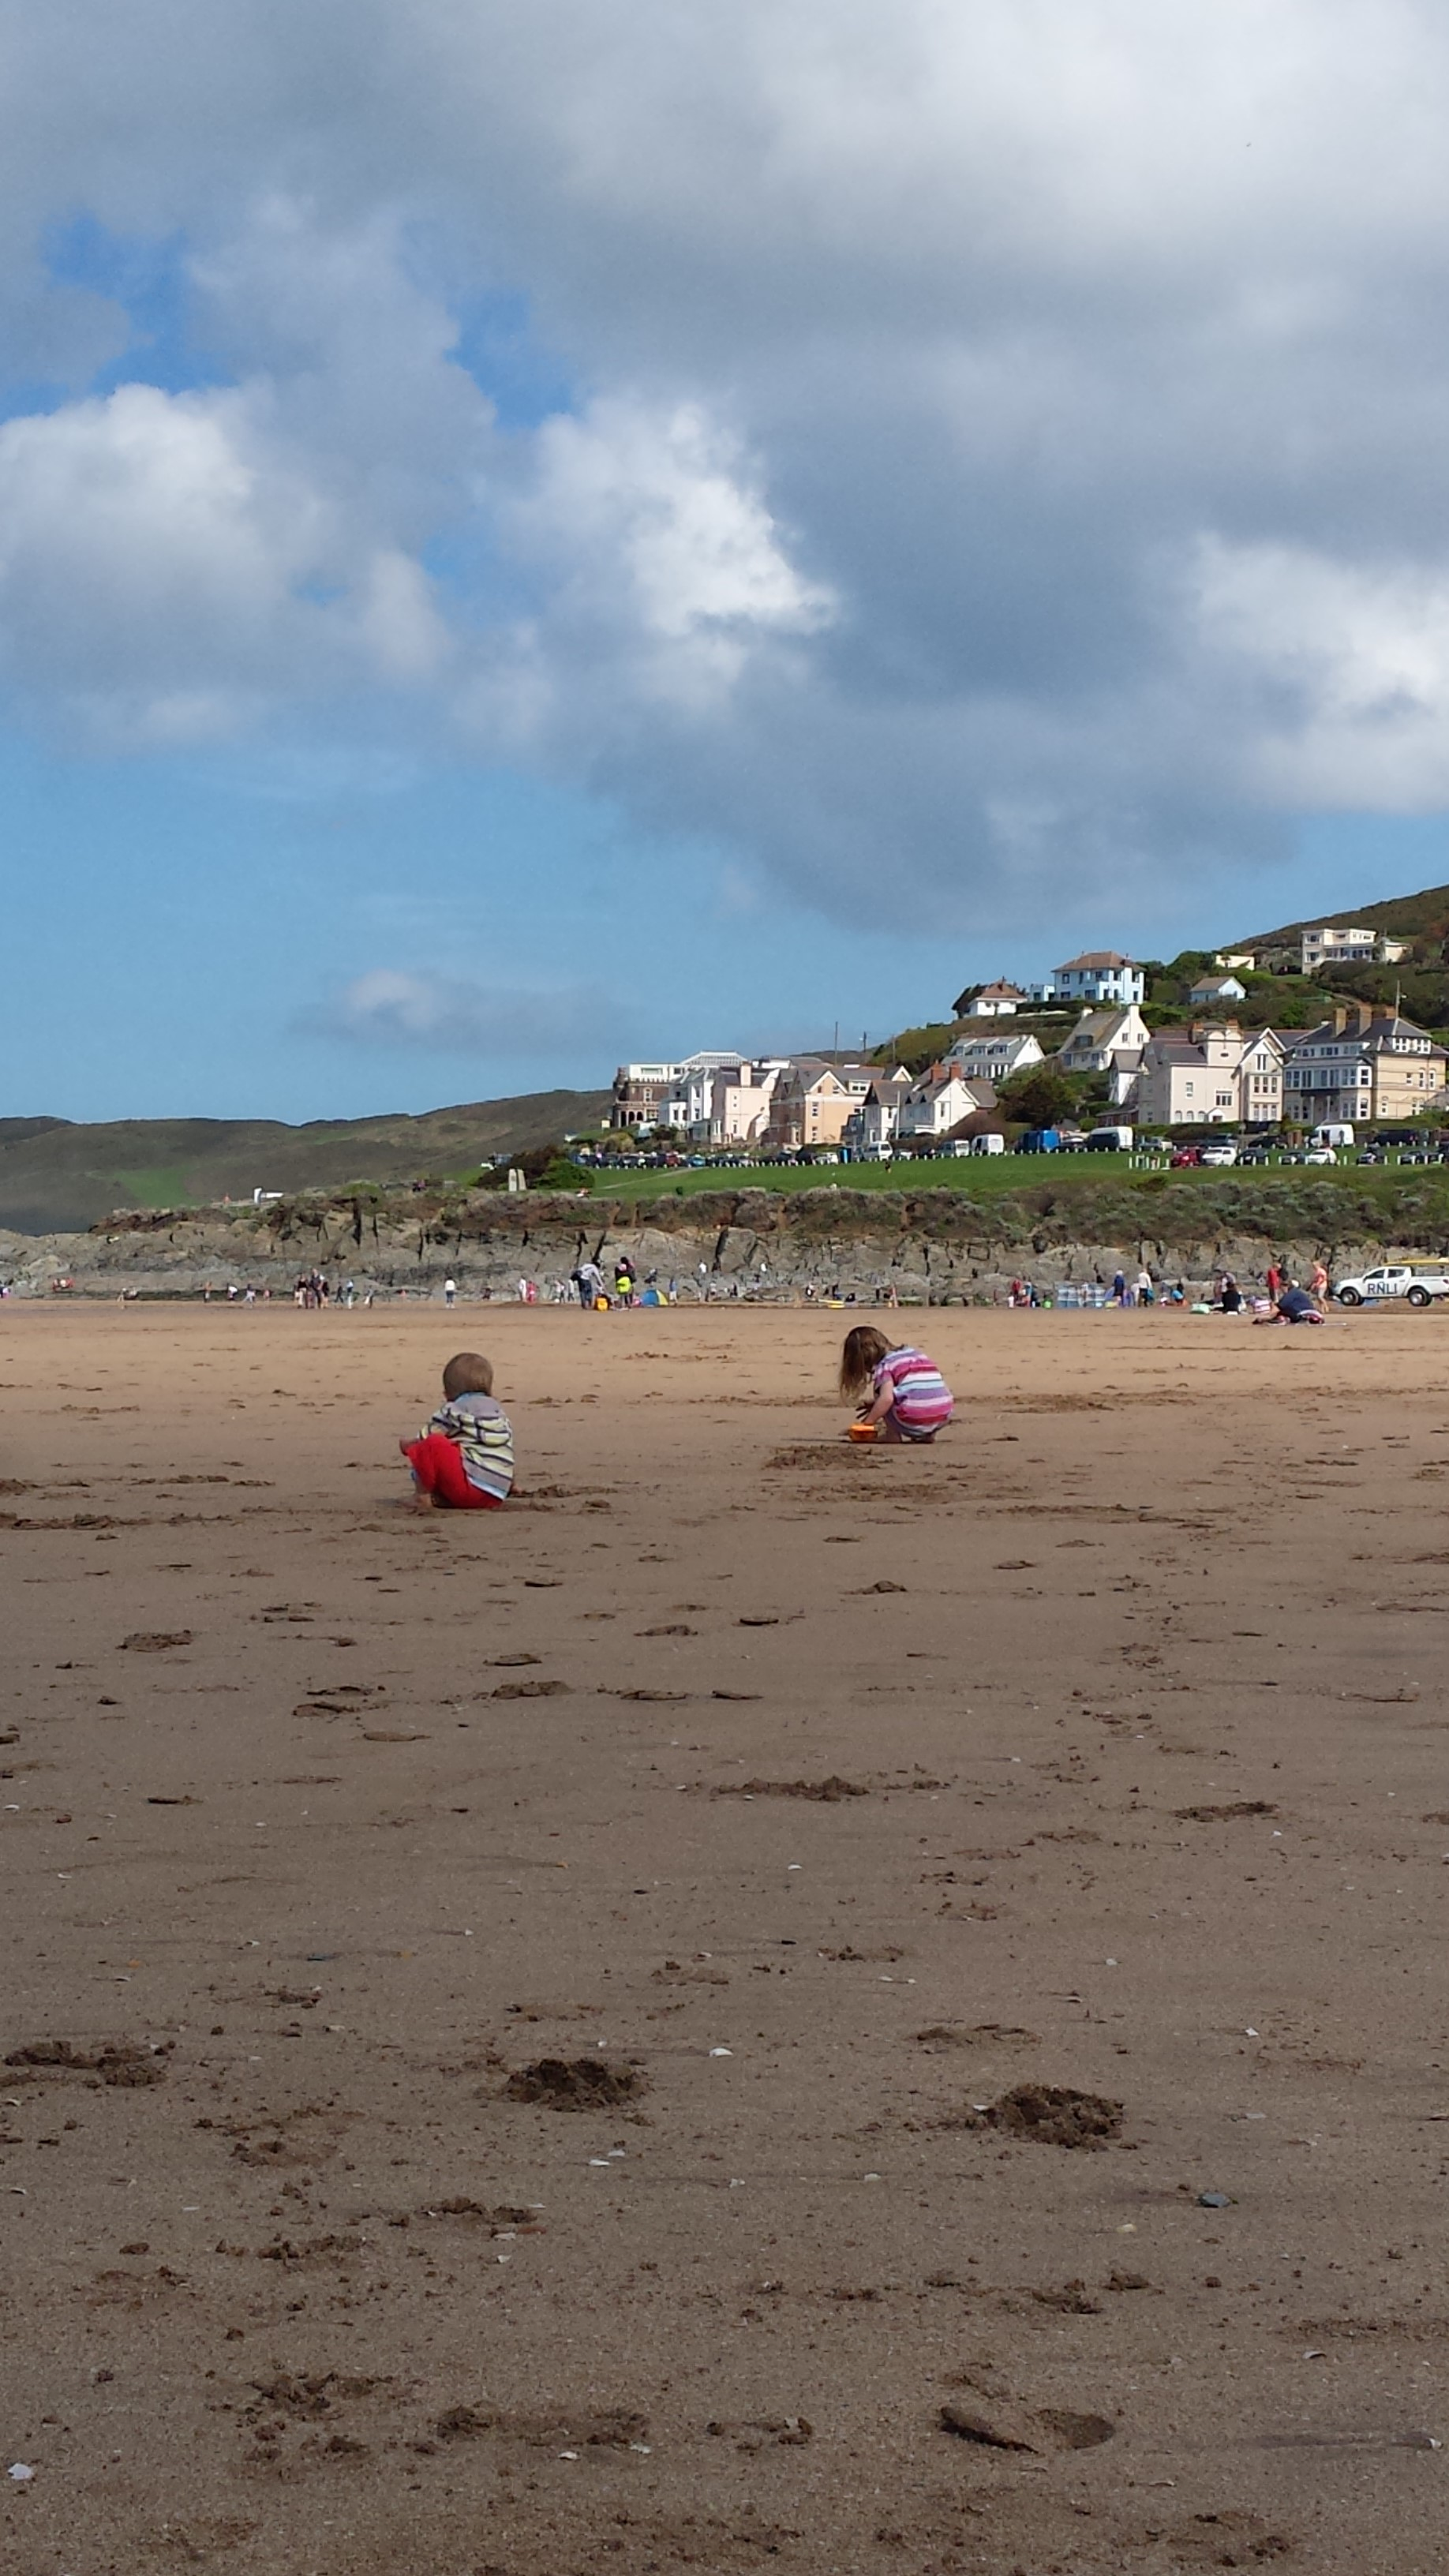 Travel adventures to Woolacombe bay, a view of my children playing on the beach.